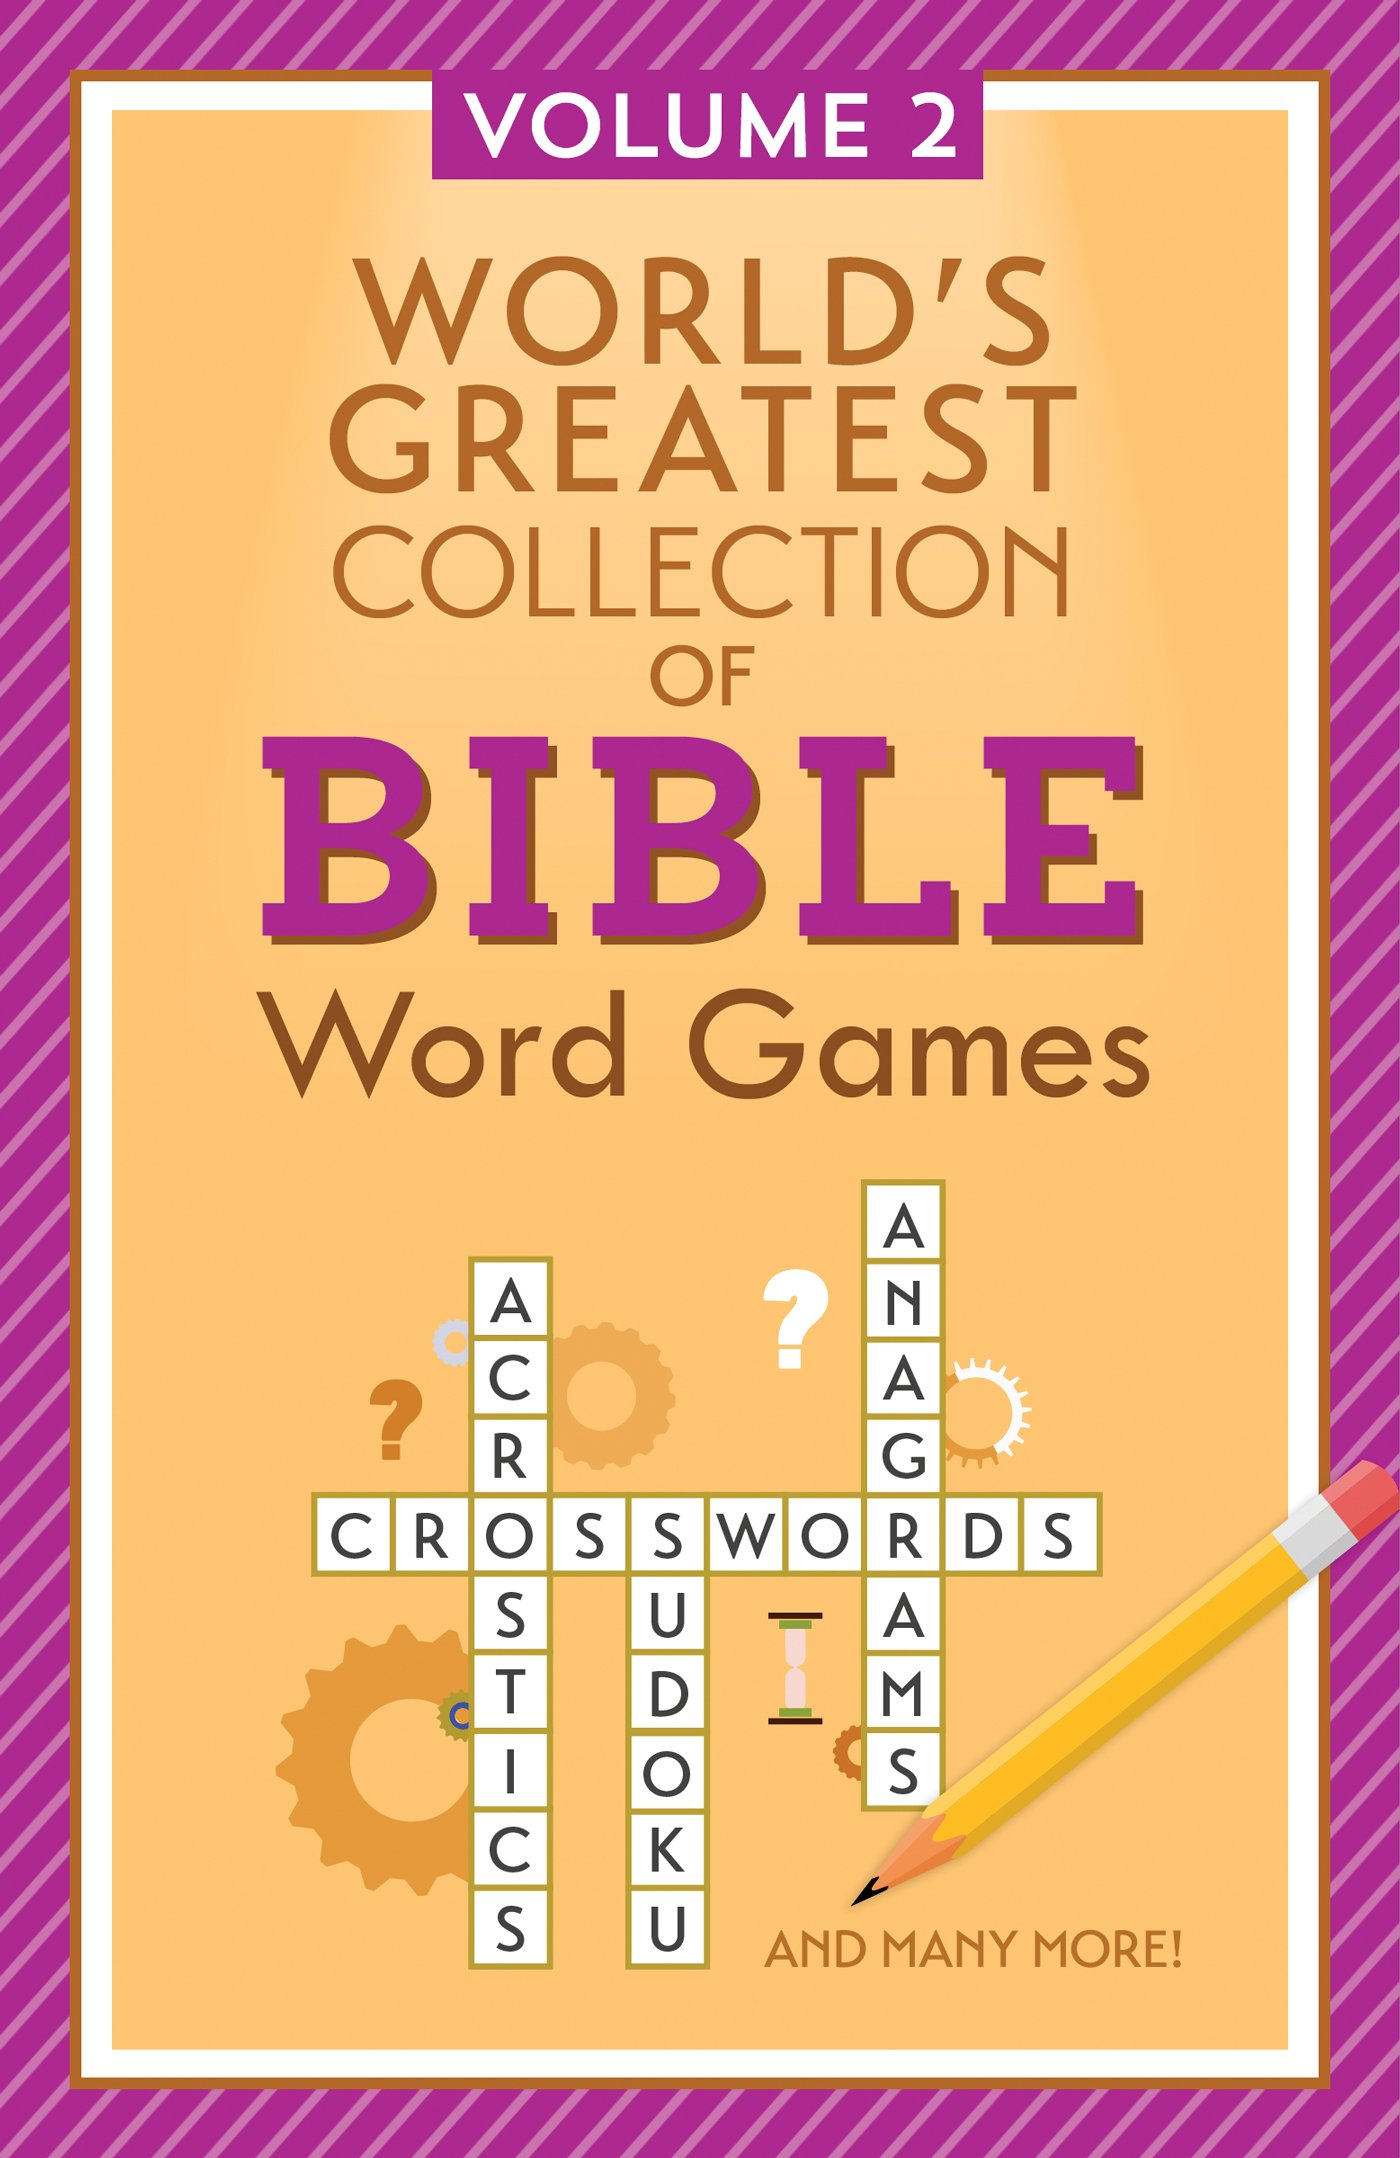 World's Greatest Collection of Bible Word Games: Volume 2 (Stick-With-Me Notes) pdf